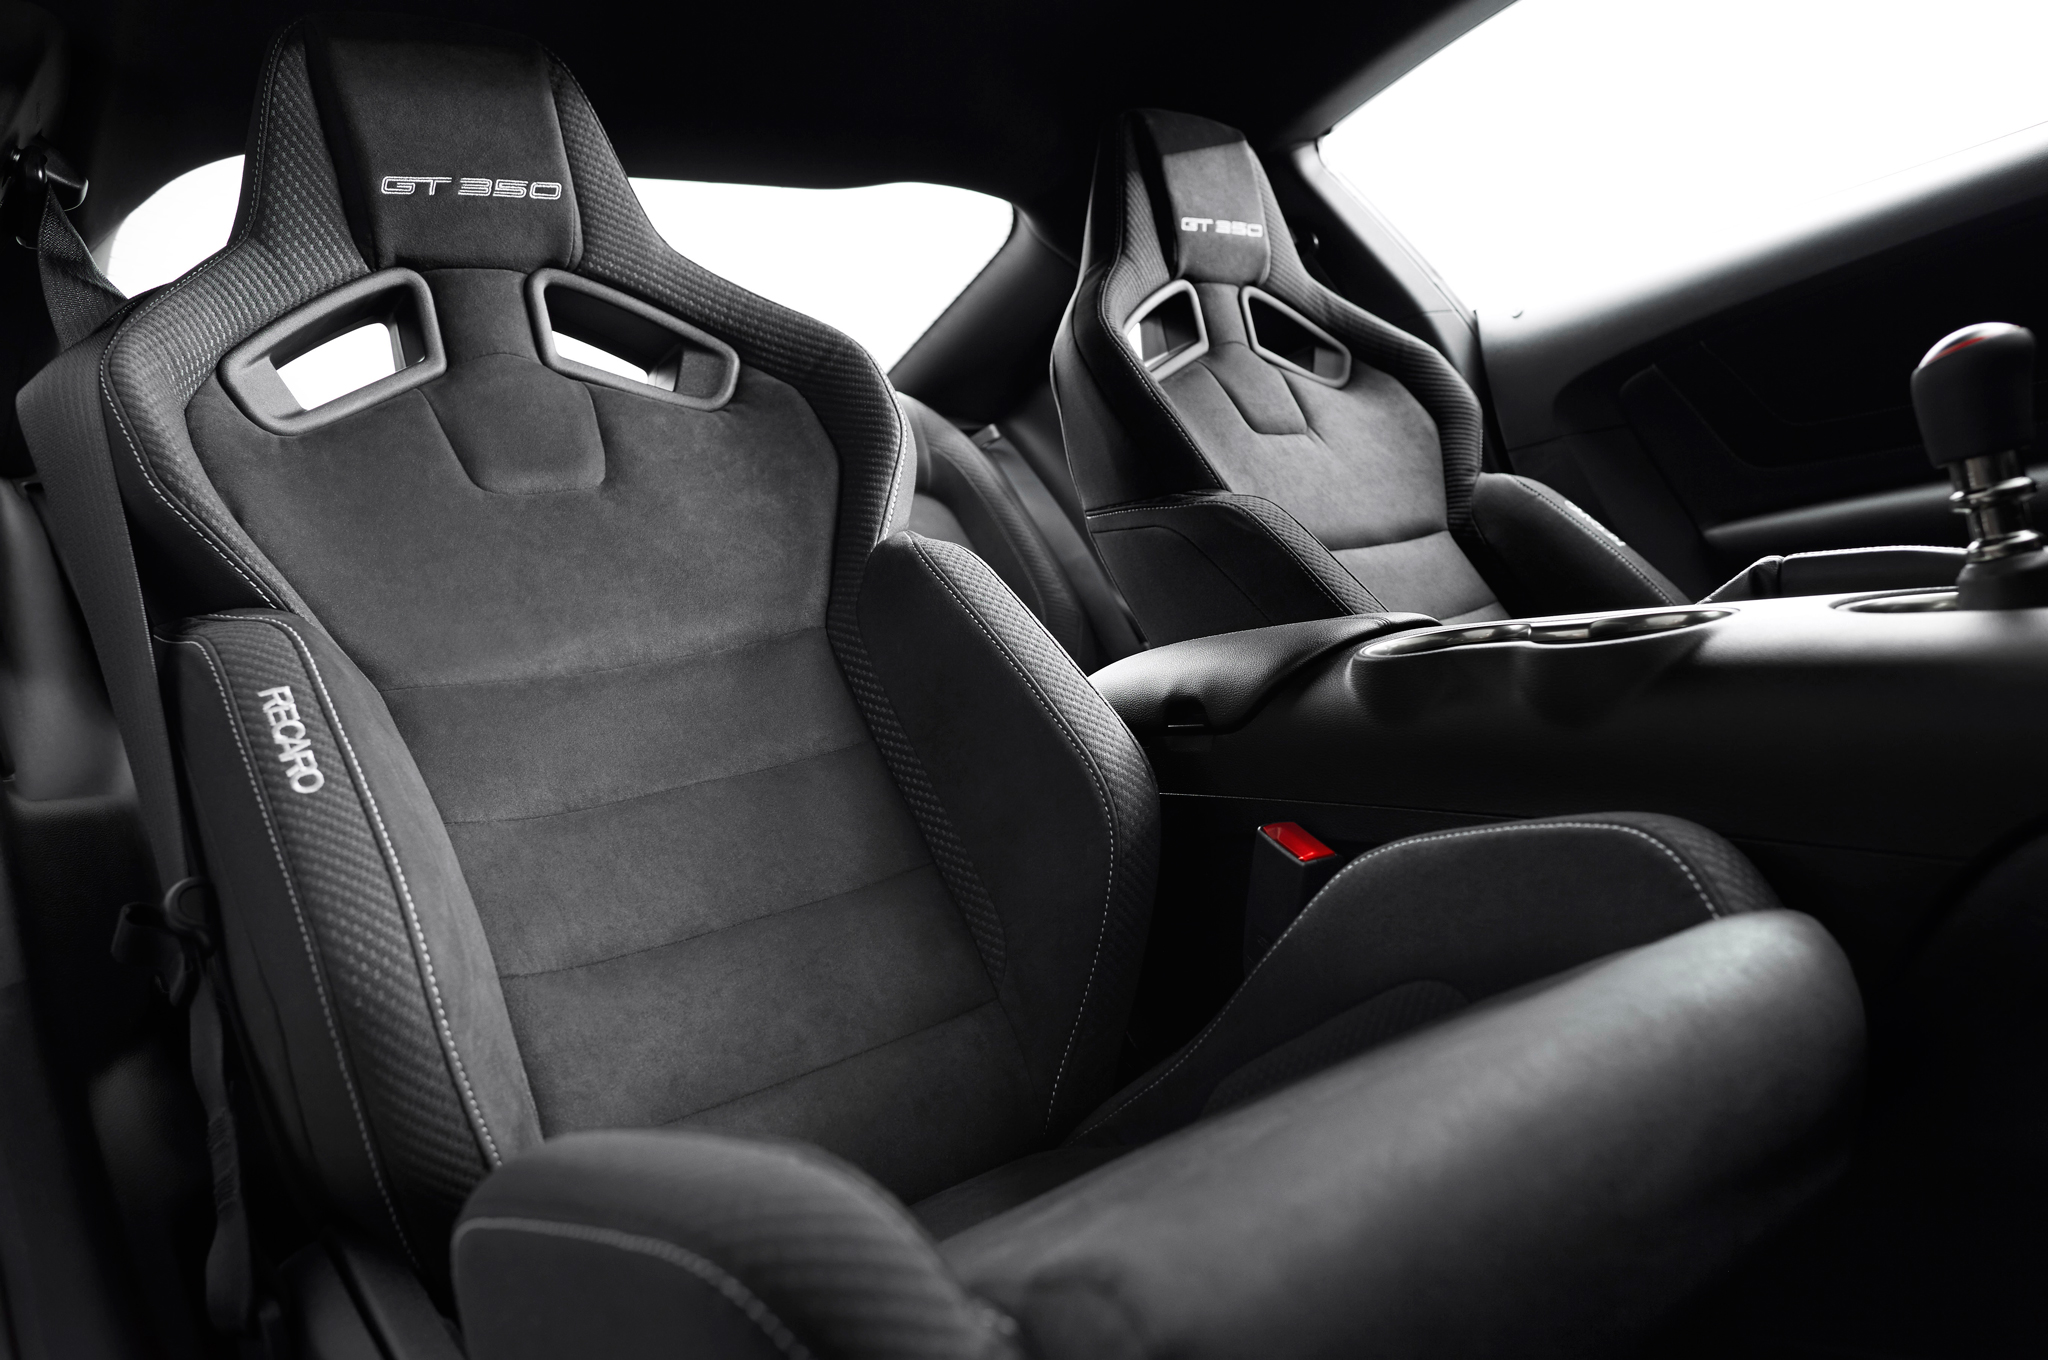 2016 Ford Shelby GT350 Mustang Interior Seats